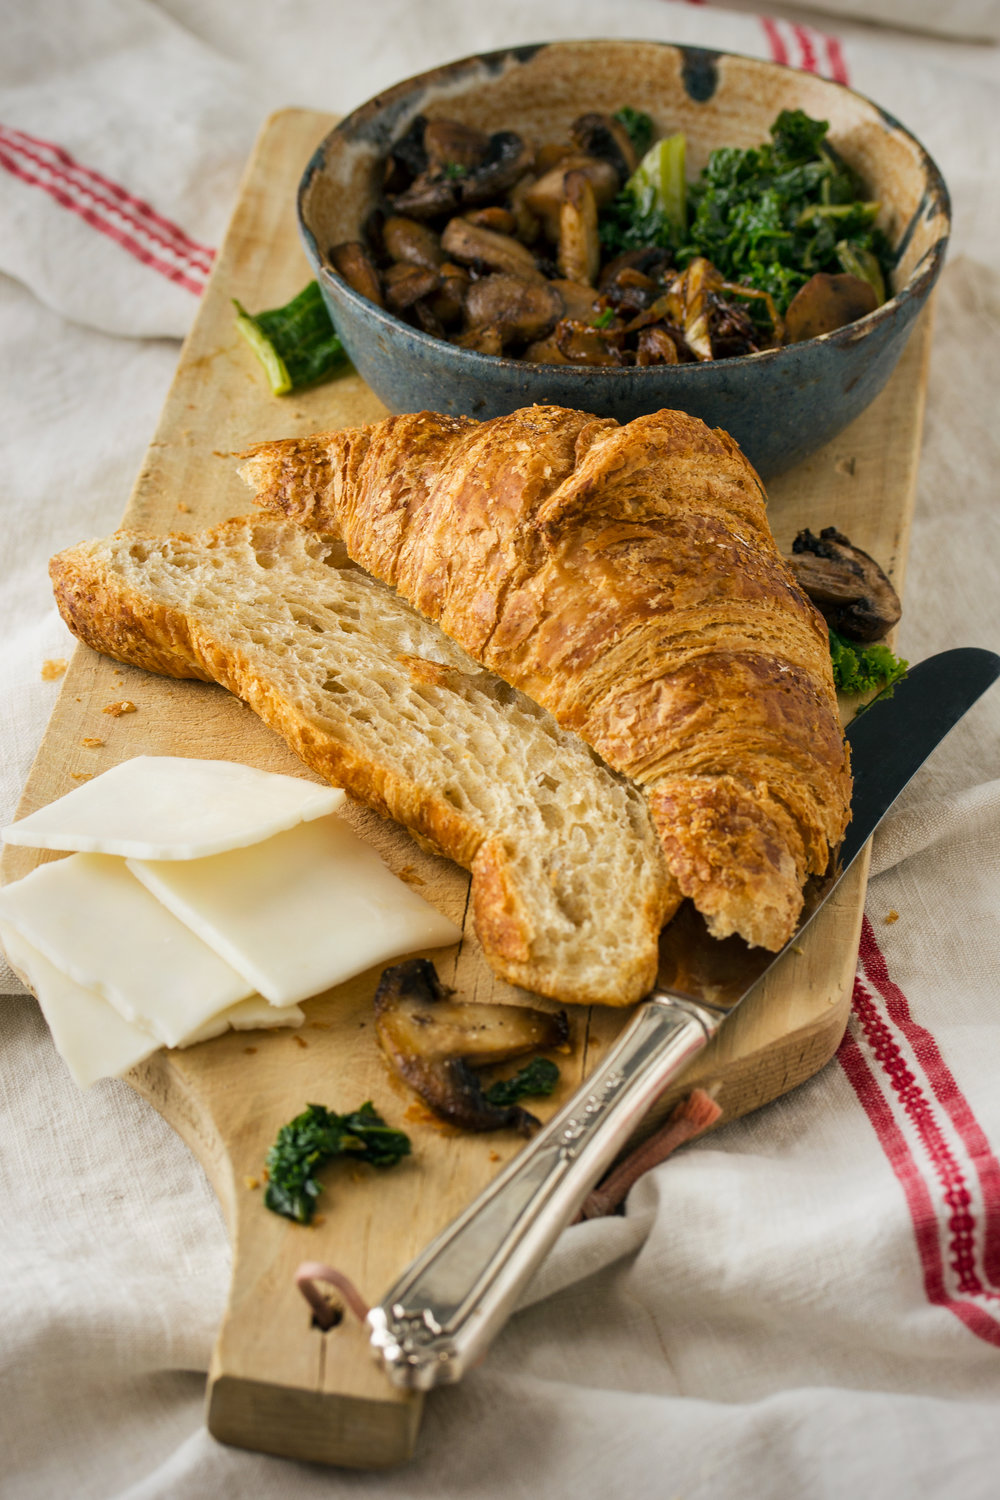 Whole Wheat Croissant with Mushrooms, Kale, Caramelized Onions, and Goat Cheese